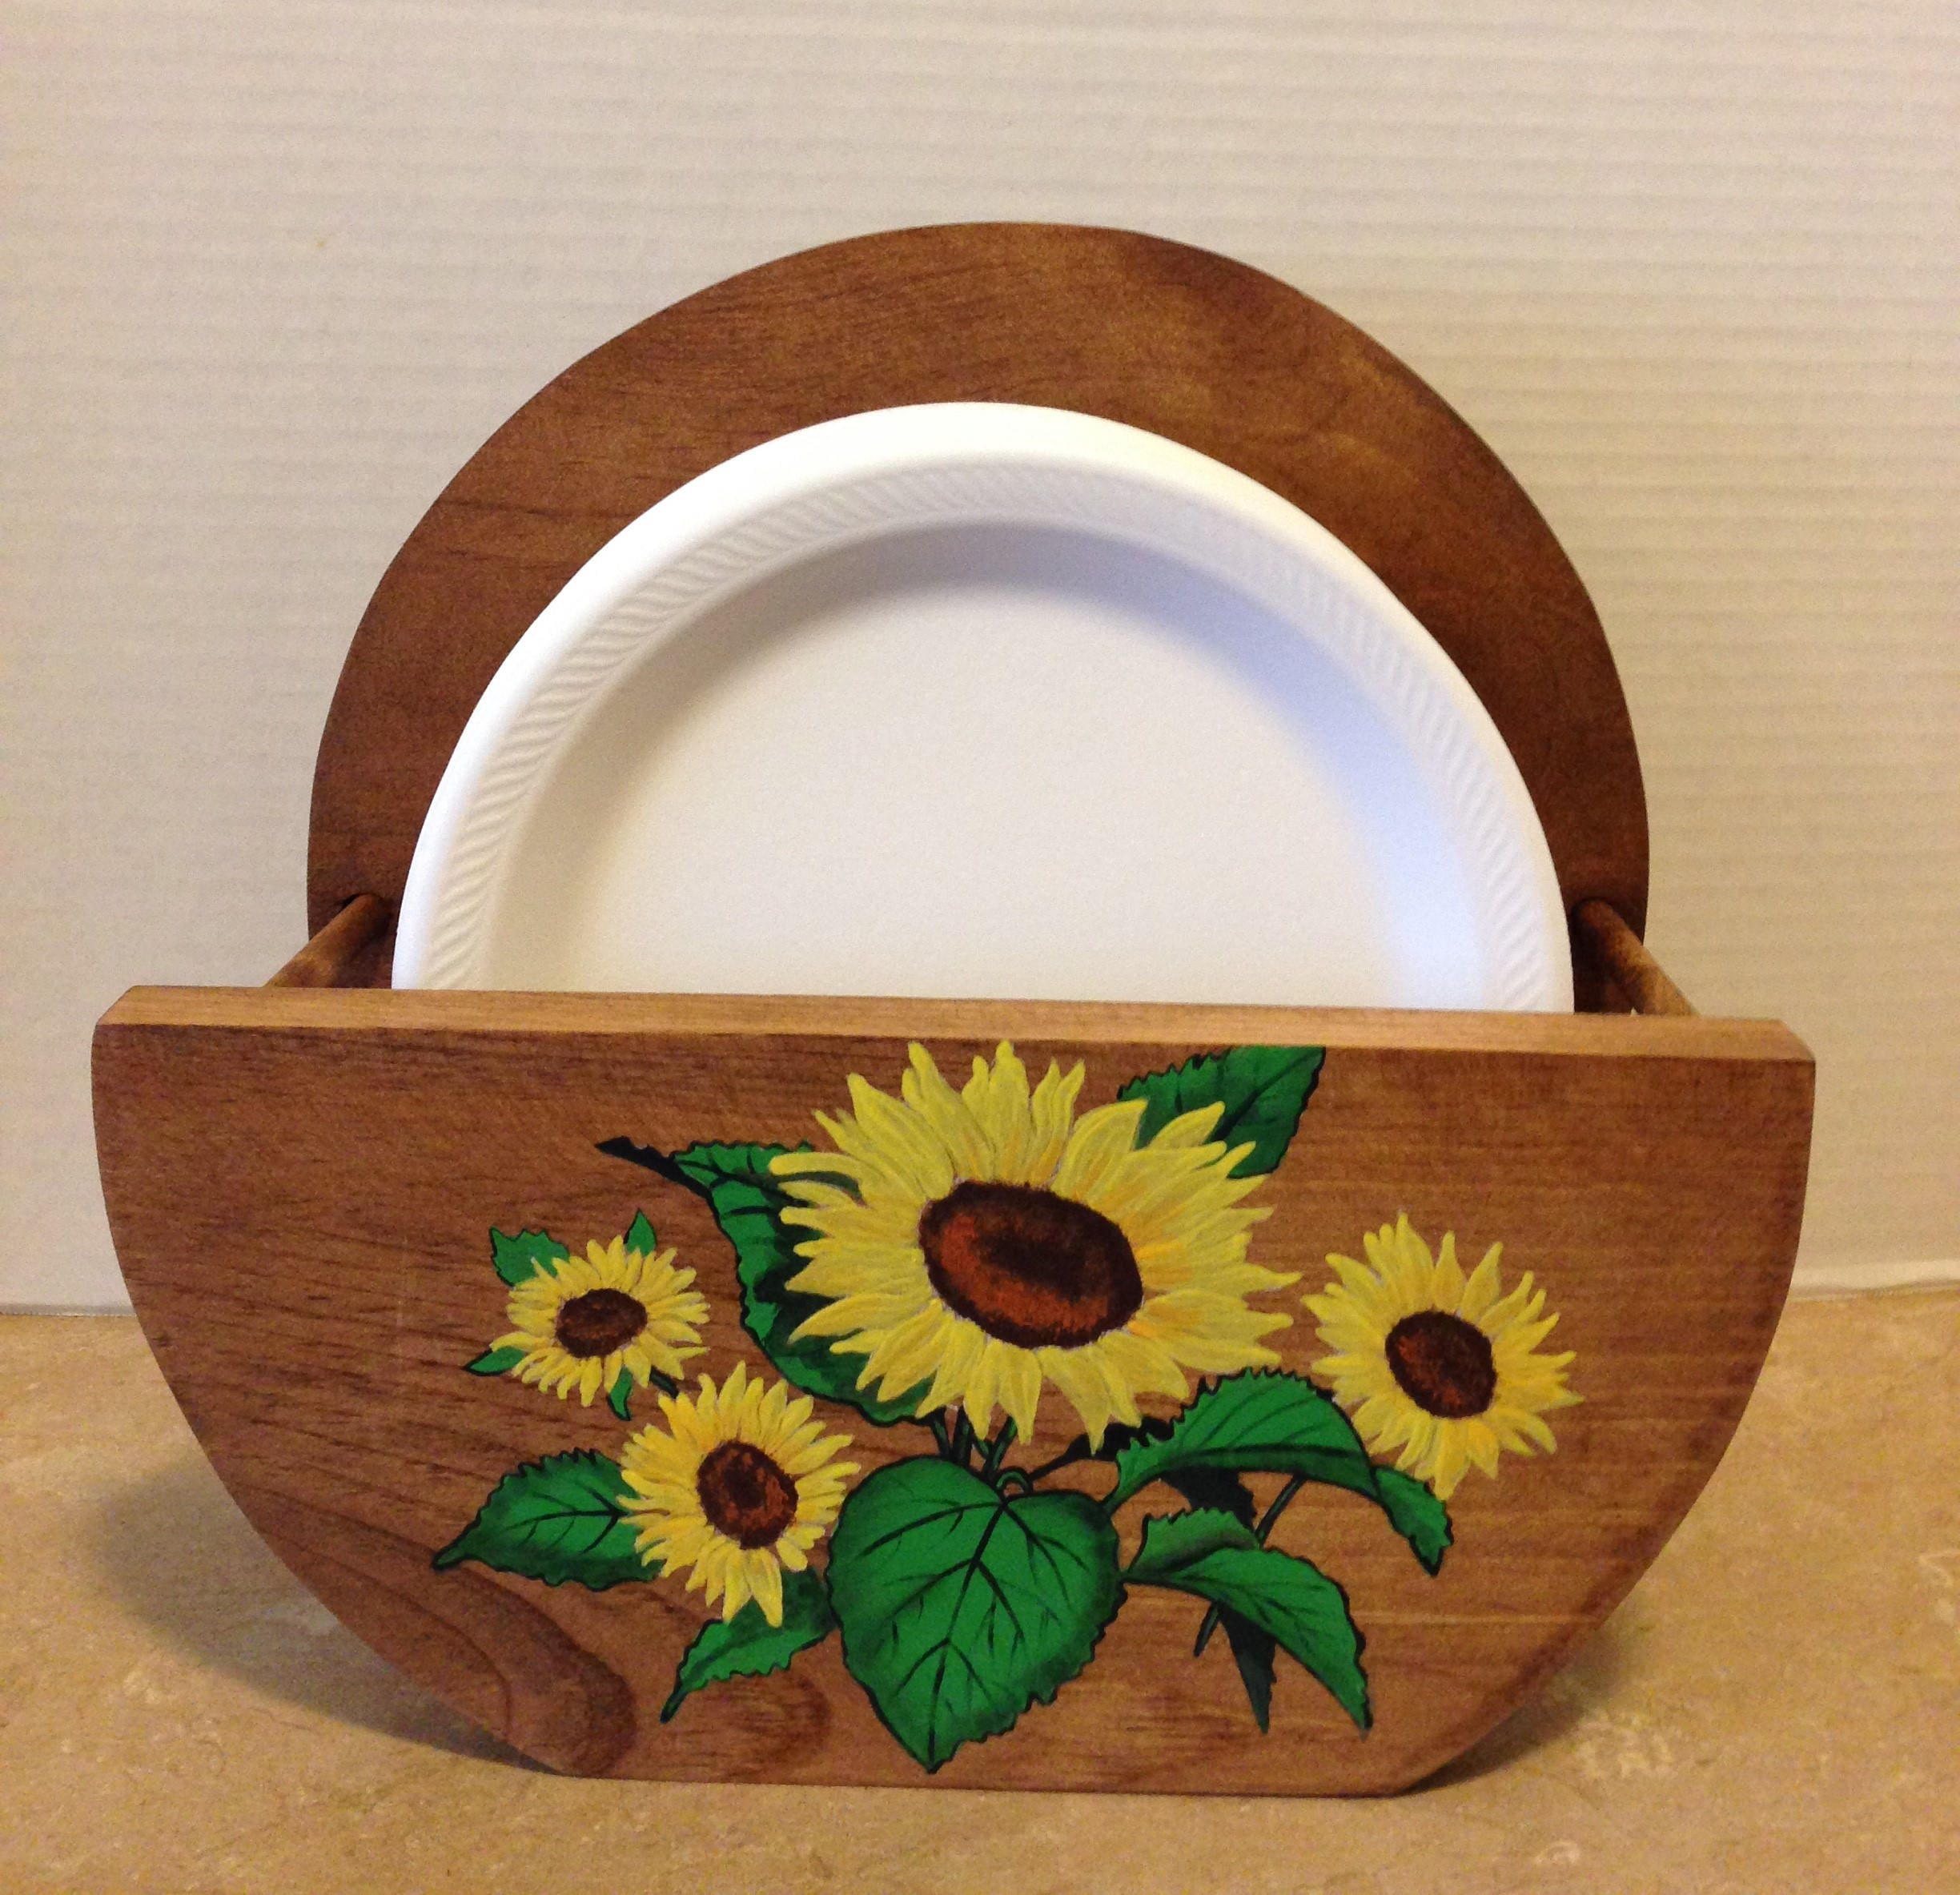 Paper Plate Holder Wooden Plate Holder Holder for Plates Sunflower Decor Sunflowers Sunflower Kitchen Country Decor Hand painted & Paper Plate Holder Wooden Plate Holder Holder for Plates ...